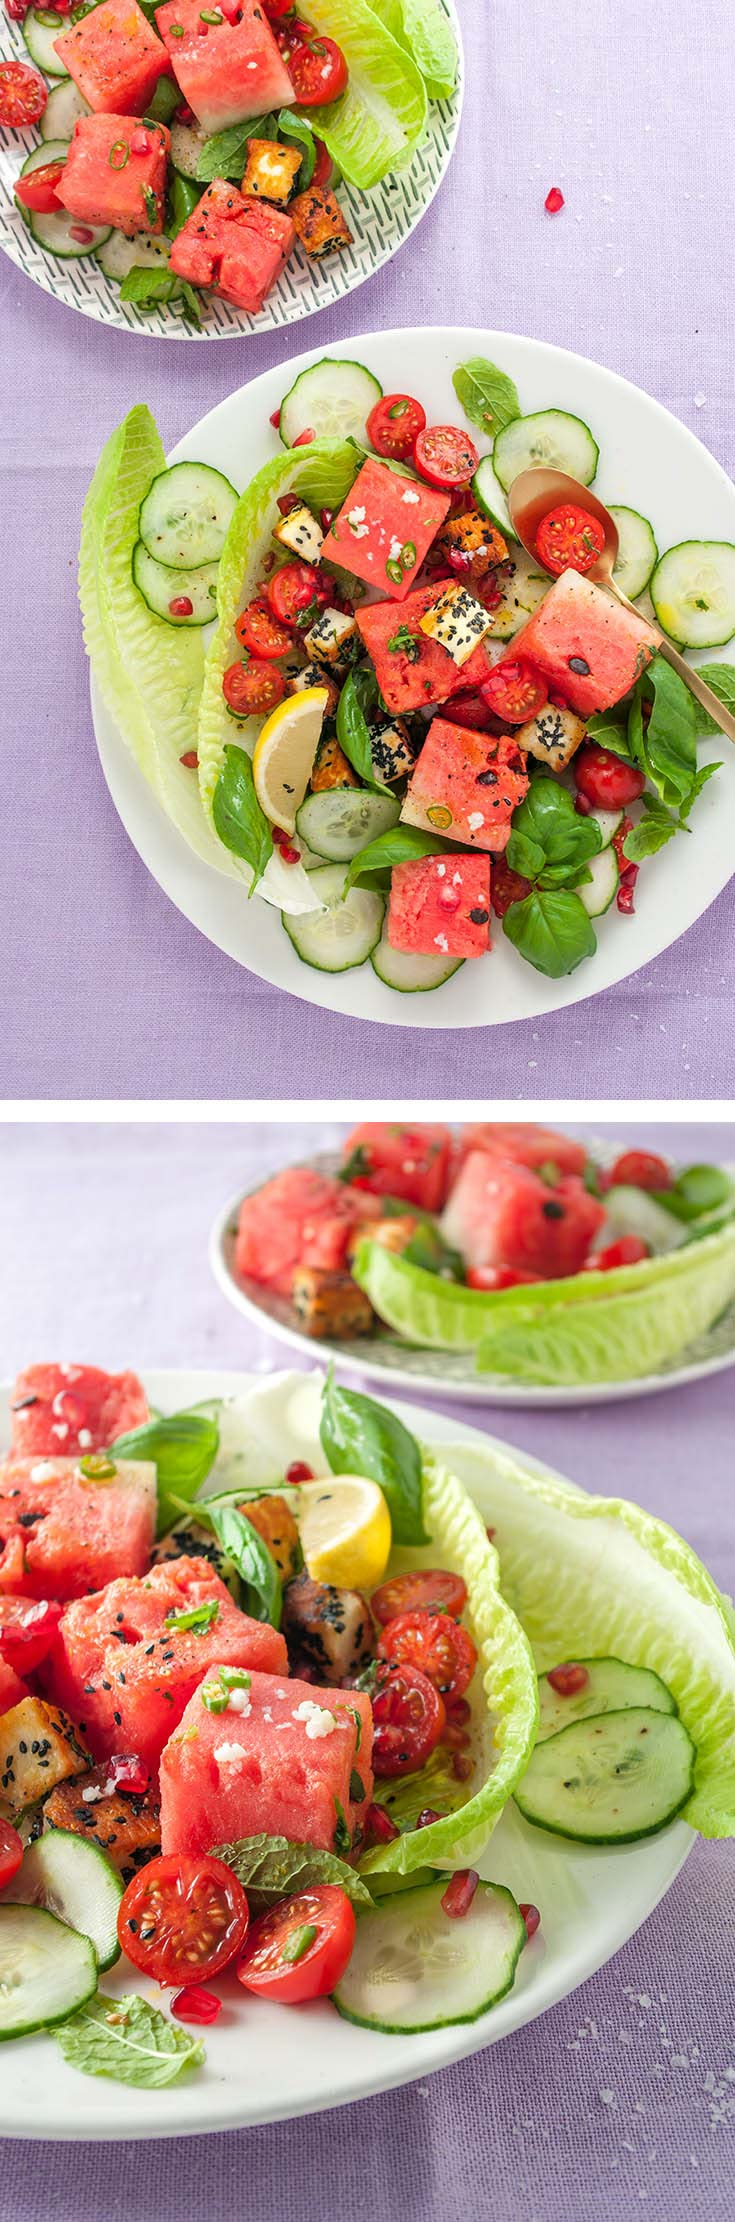 halloumi watermelon salad with basil delicious from scratch